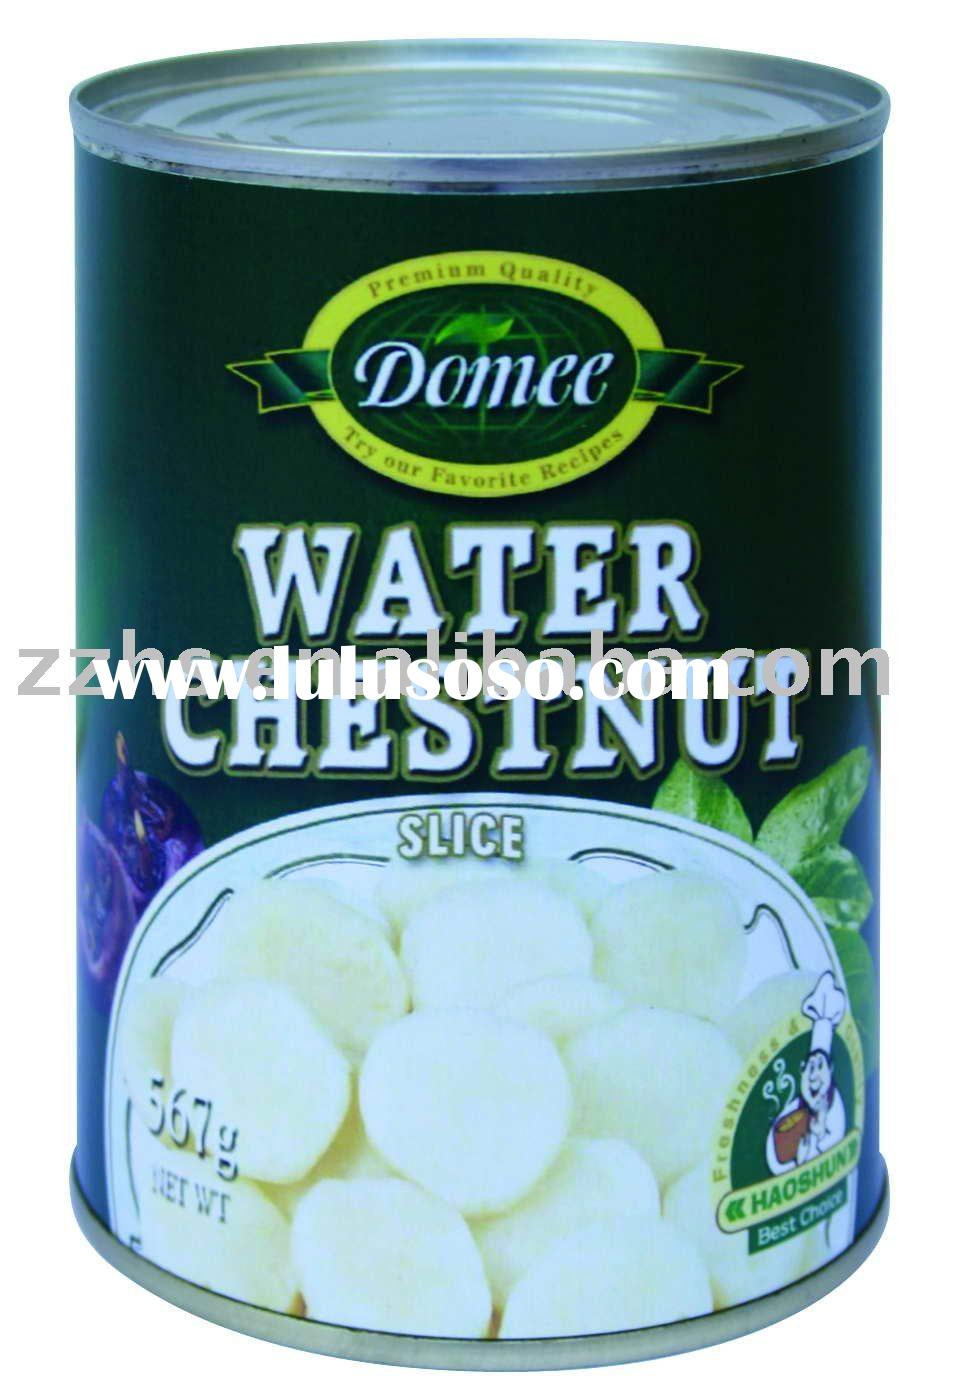 Canned Water Chestnut slice,canned vegetable,water chestnut